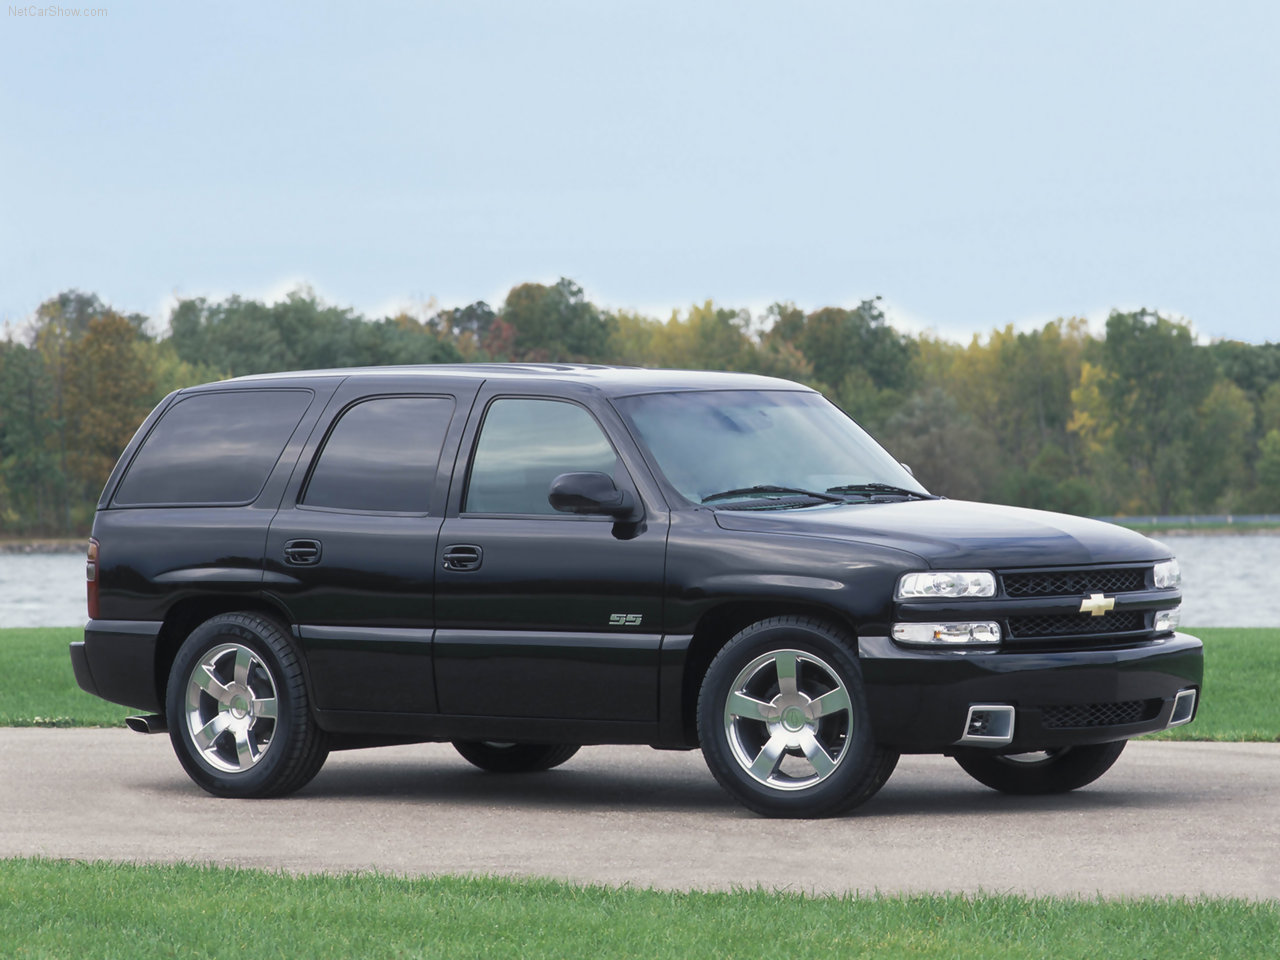 Chevrolet tahoe 2004 review amazing pictures and images look at the car